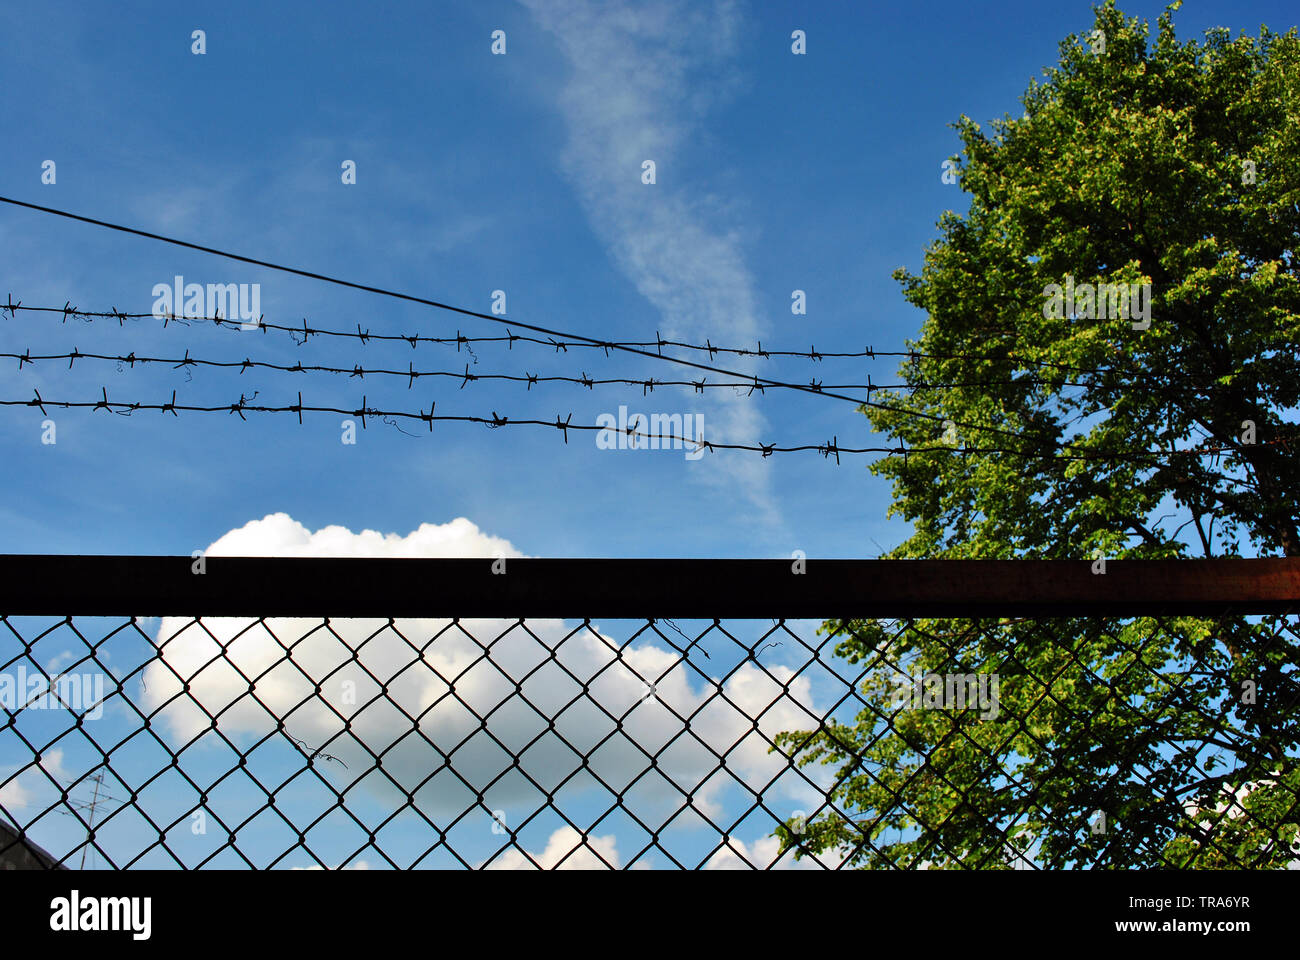 Green tree behind jail barbed wire grid fence, spring sunny landscape with blue cloudy sky background - Stock Image